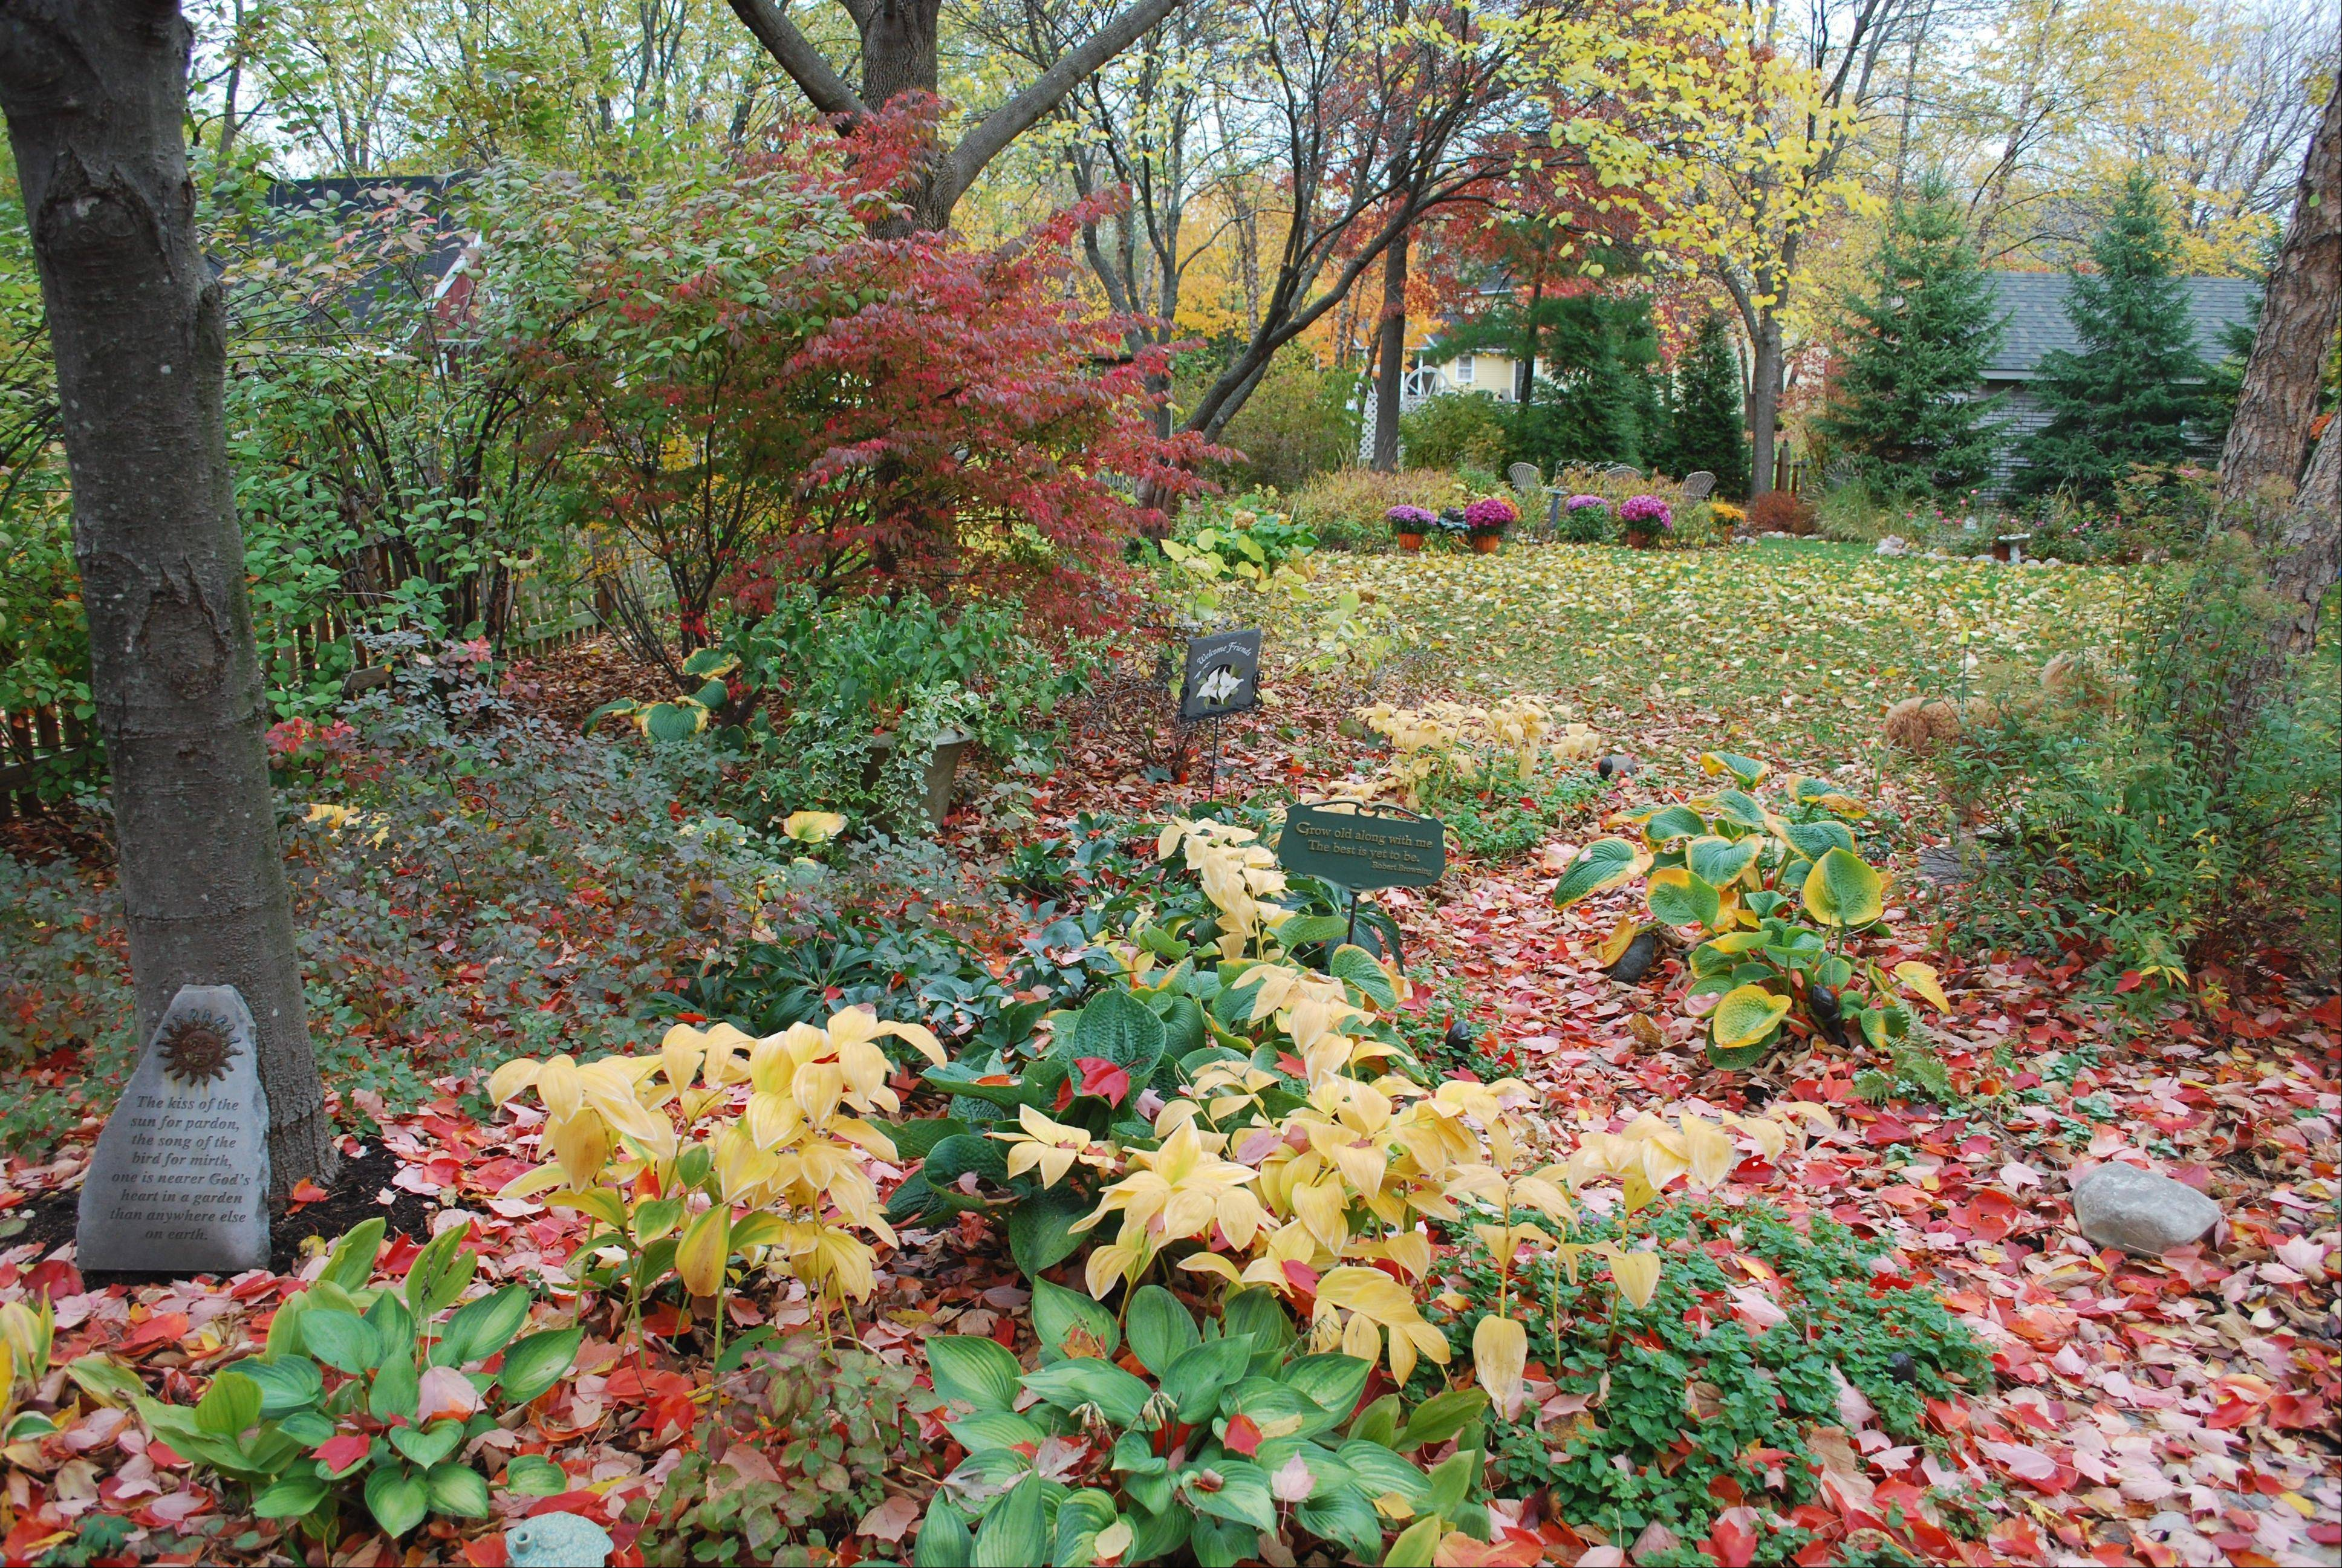 Fall brings a new set of colors to Christensen's landscape.